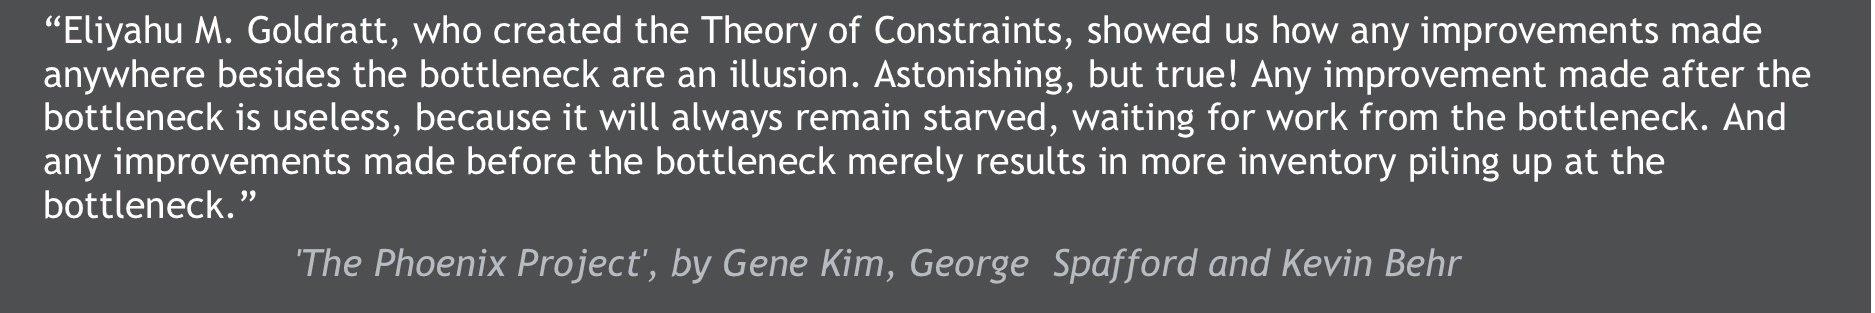 The Theory of Constraints Quote from The Phoenix Project.jpg